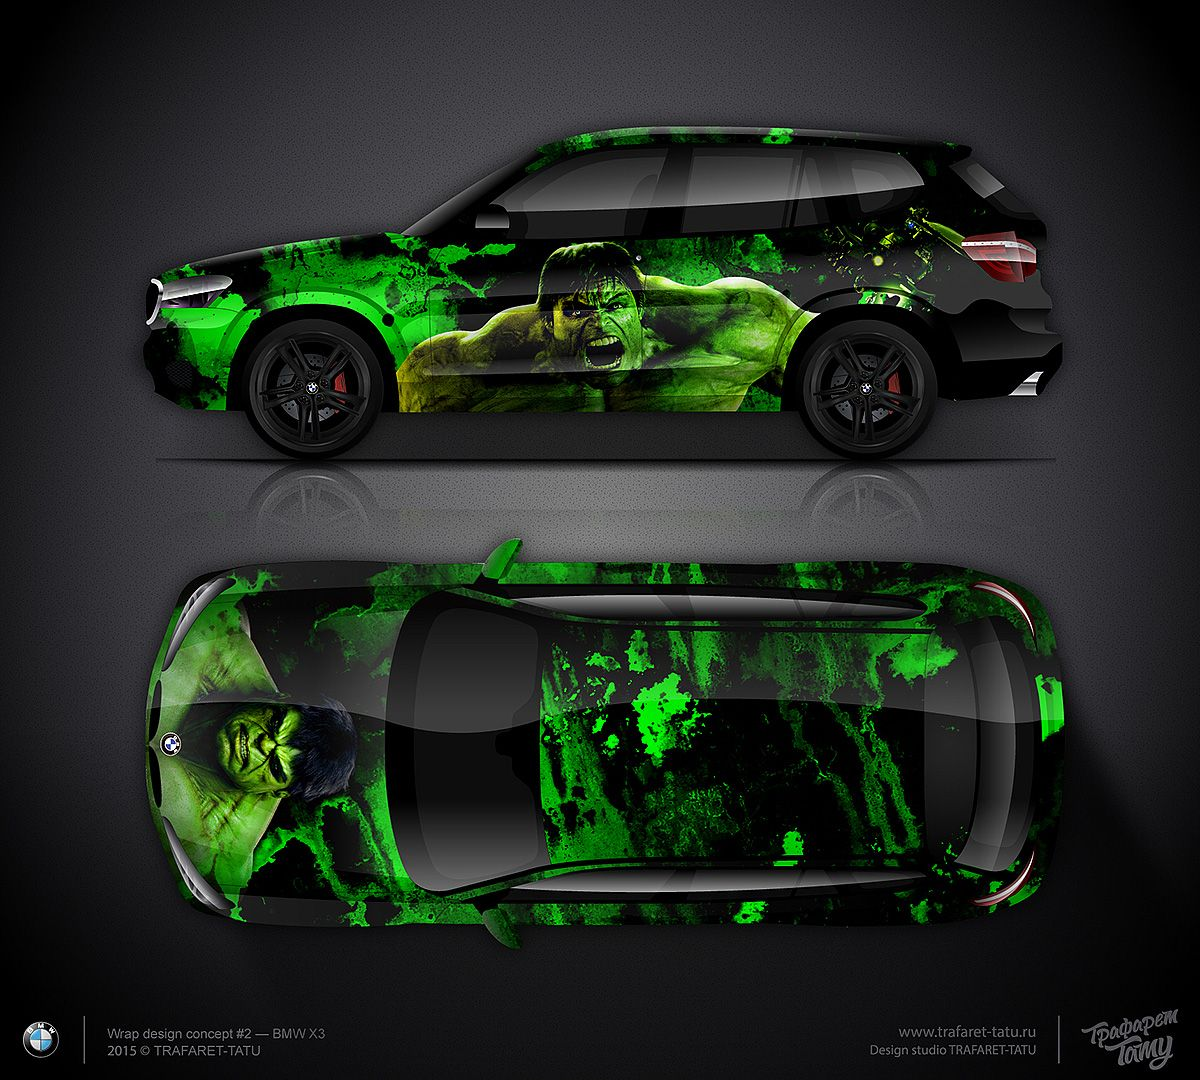 carwrapping wrap vehicle inspiration vehiclewrap autobeklebung autofolierung folie. Black Bedroom Furniture Sets. Home Design Ideas